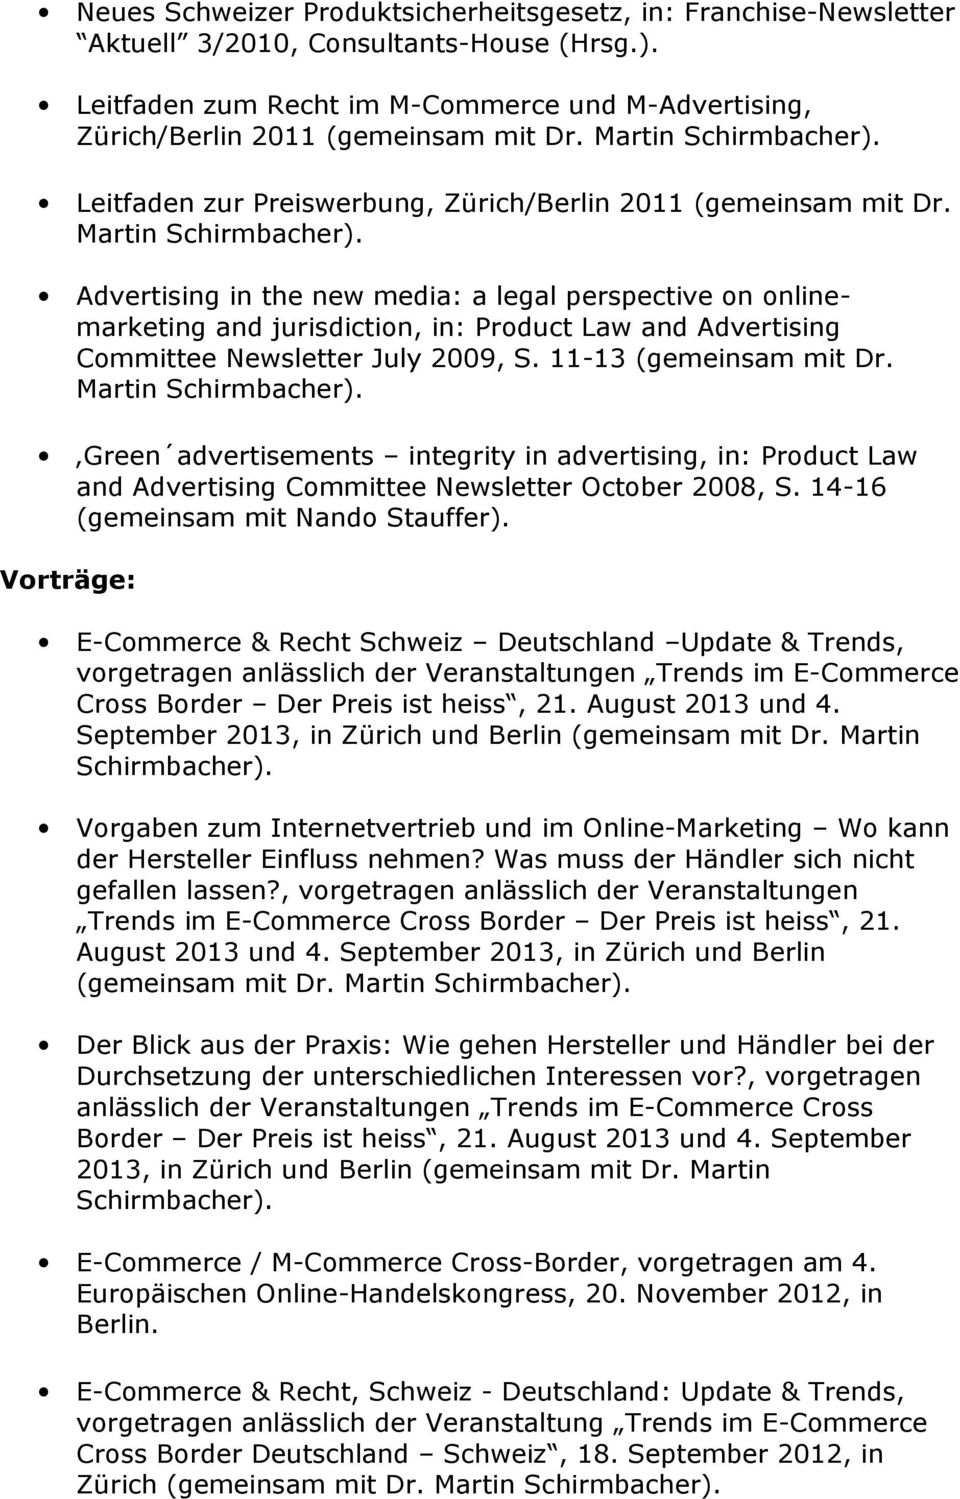 Martin Advertising in the new media: a legal perspective on onlinemarketing and jurisdiction, in: Product Law and Advertising Committee Newsletter July 2009, S. 11-13 (gemeinsam mit Dr.